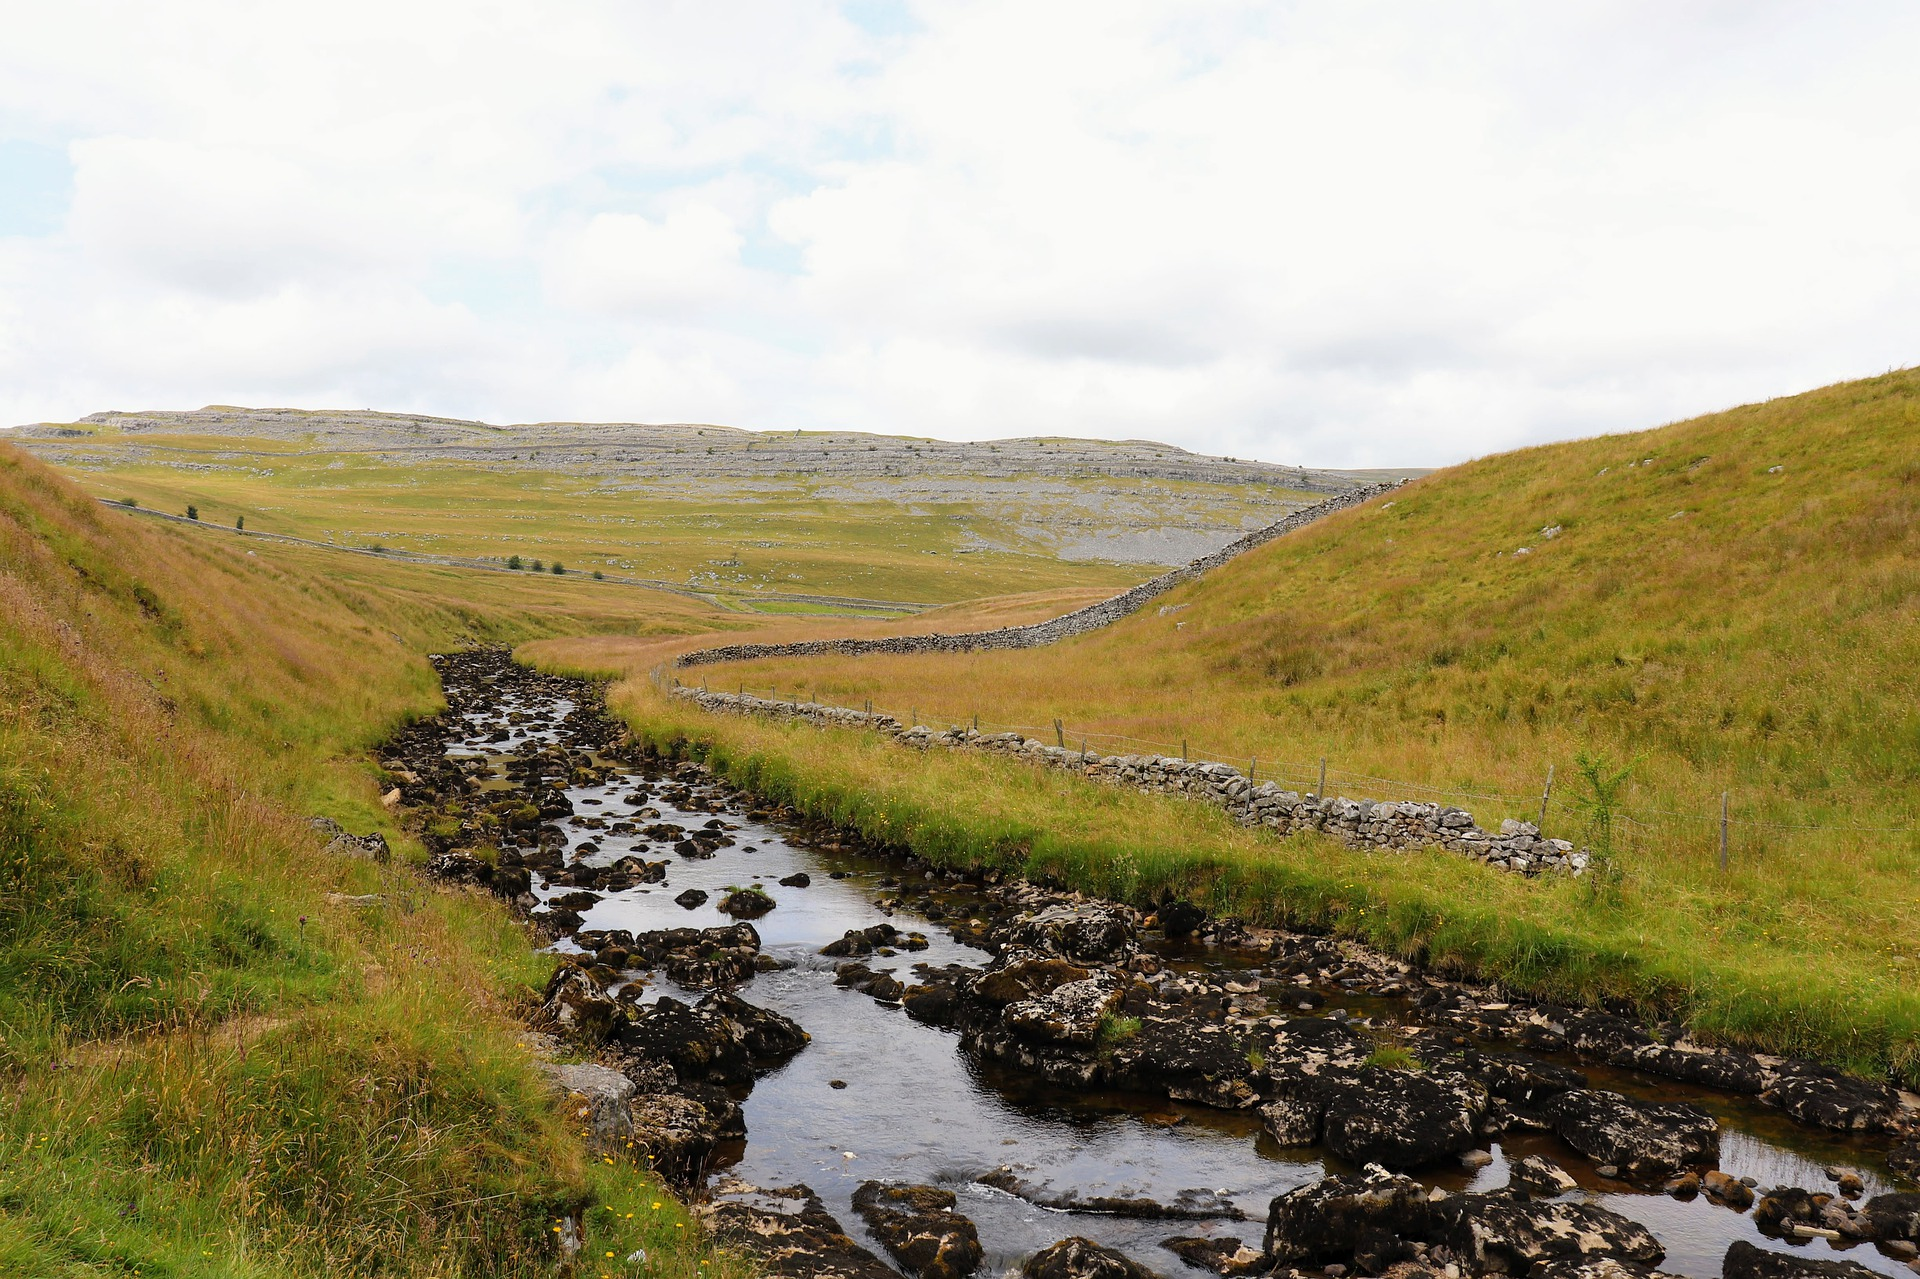 Outdoor scene of sweeping dales with river running through